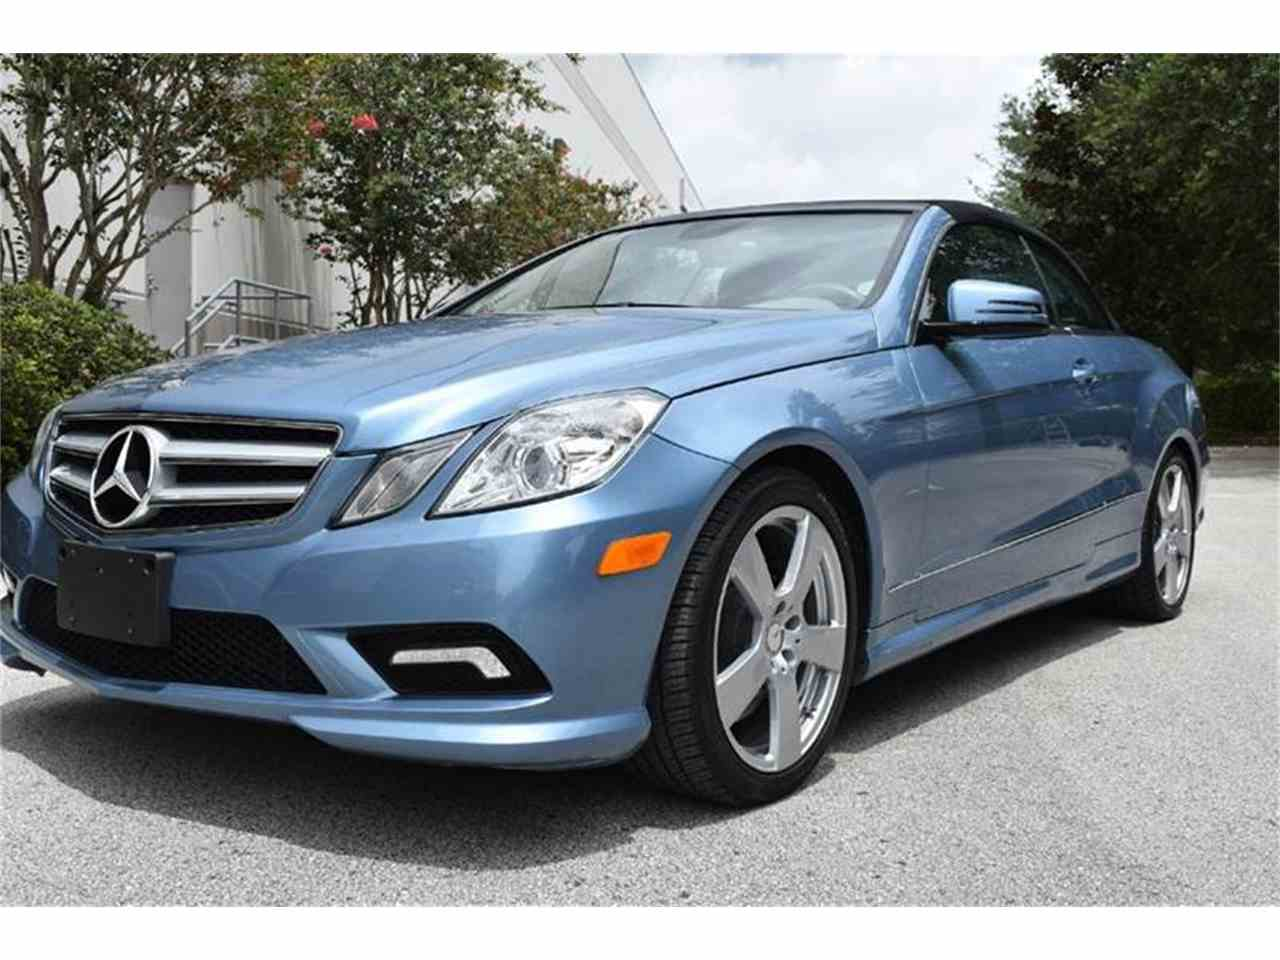 Large Picture of '11 E-Class - $31,900.00 - LWP3